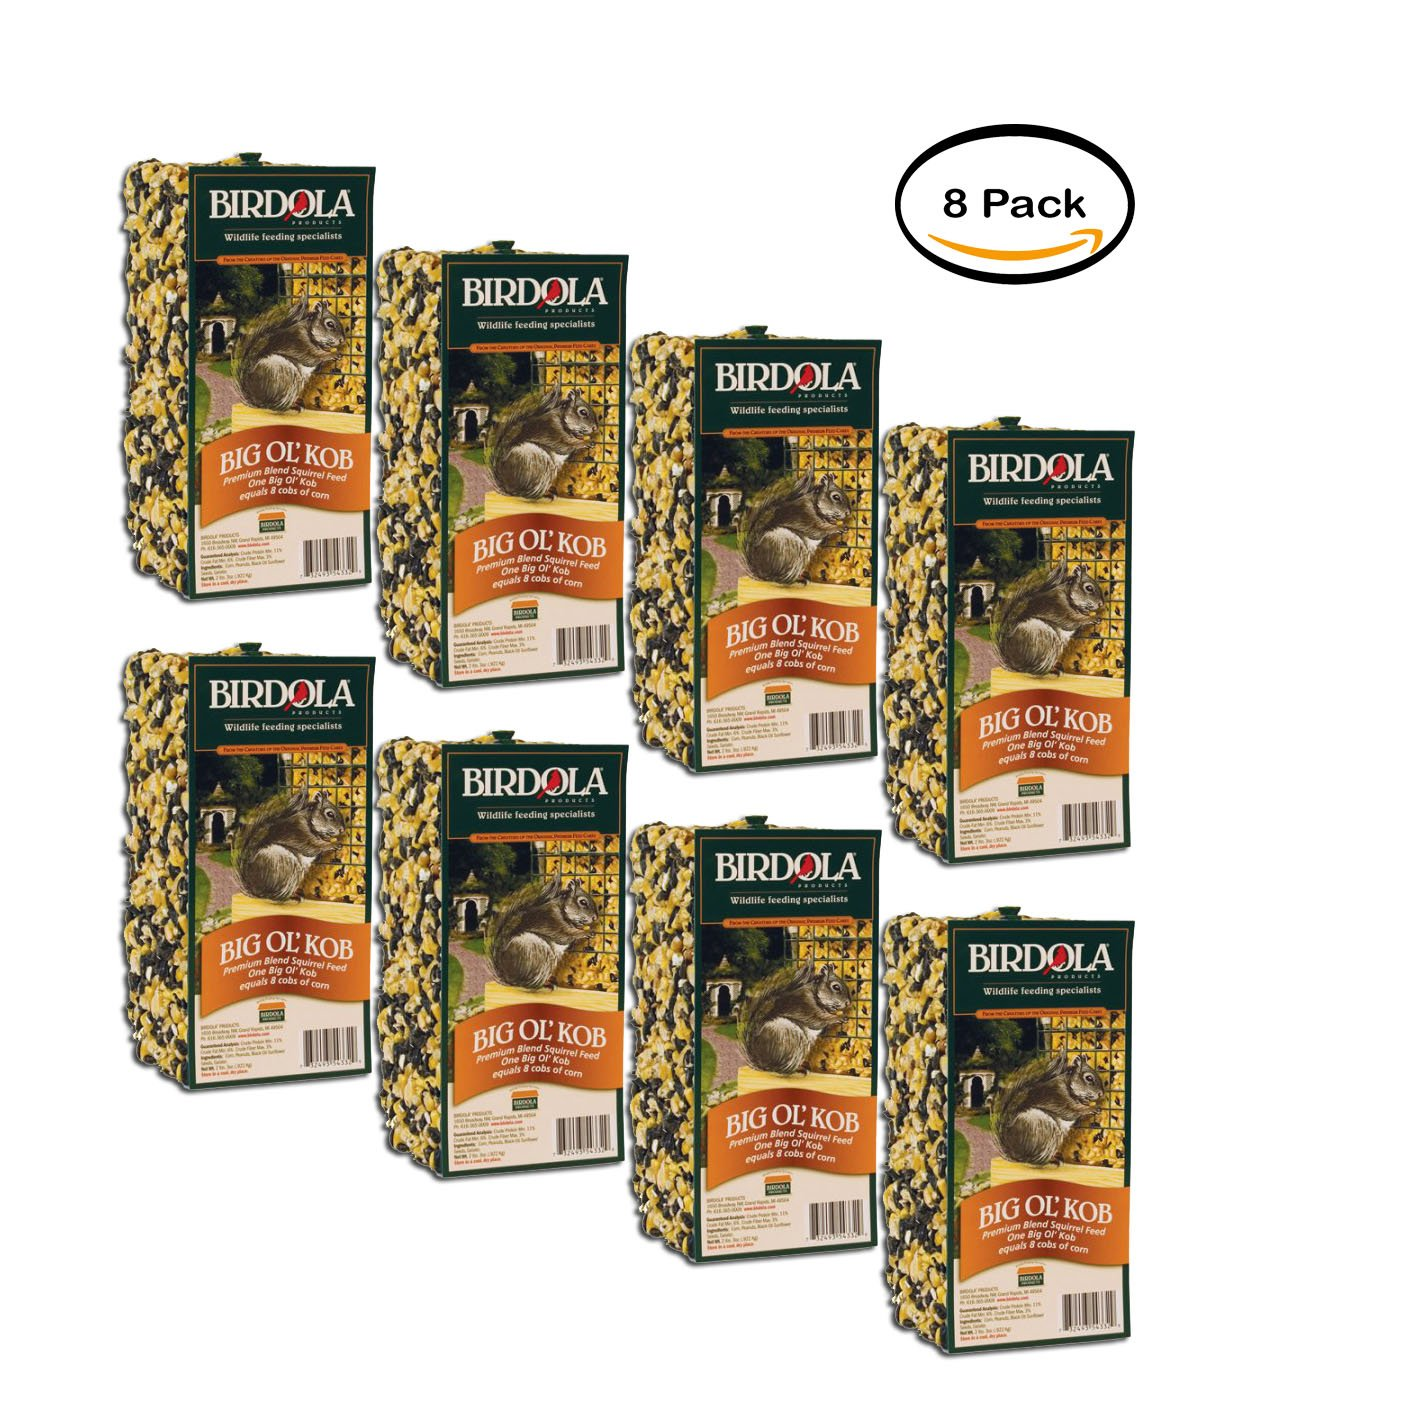 PACK OF 8 - Birdola Big Ol' Kob Squirrel Feed